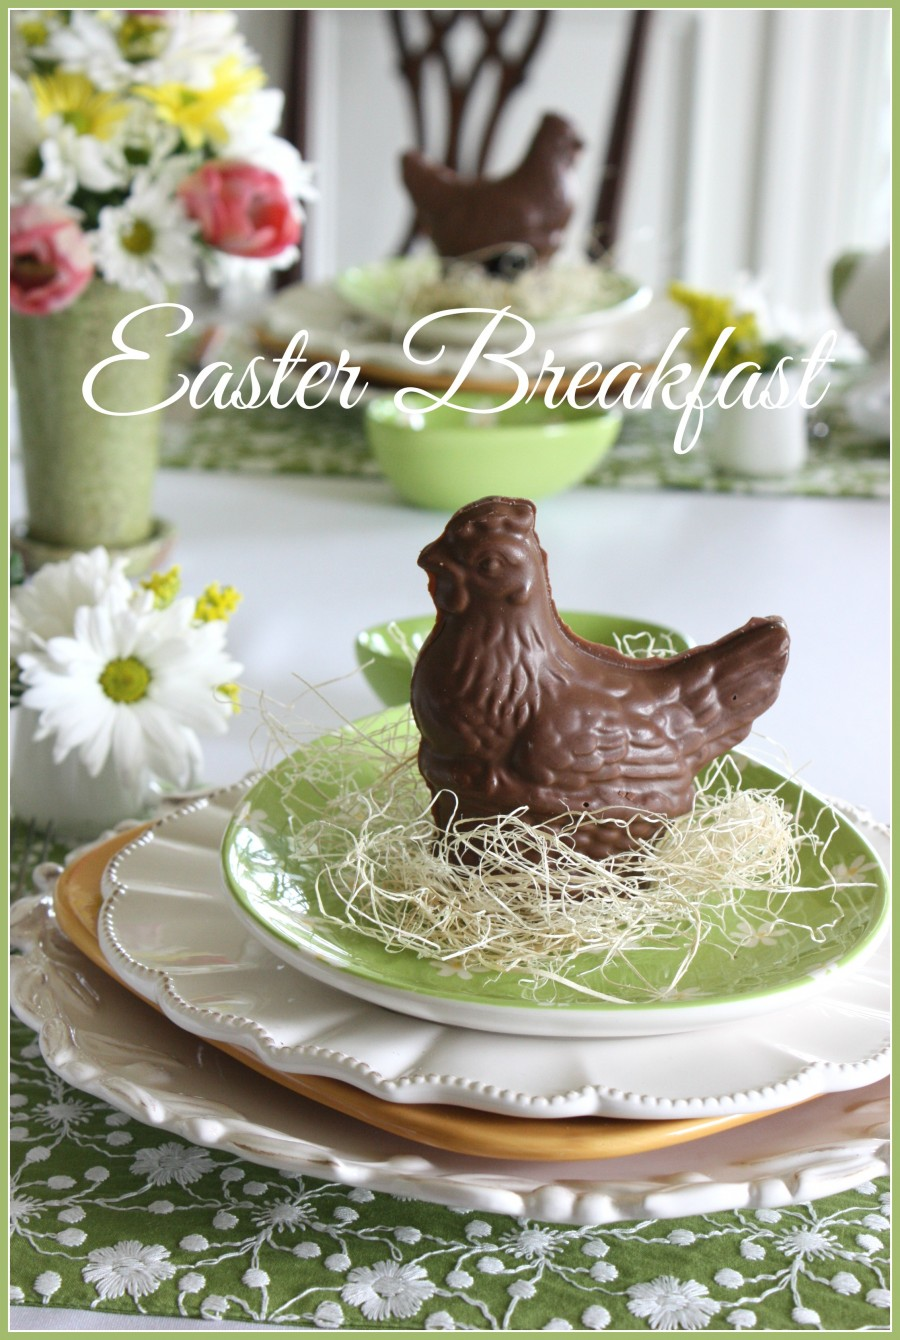 EASTER BREAKFAST-easy and sweet-stonegableblog.com